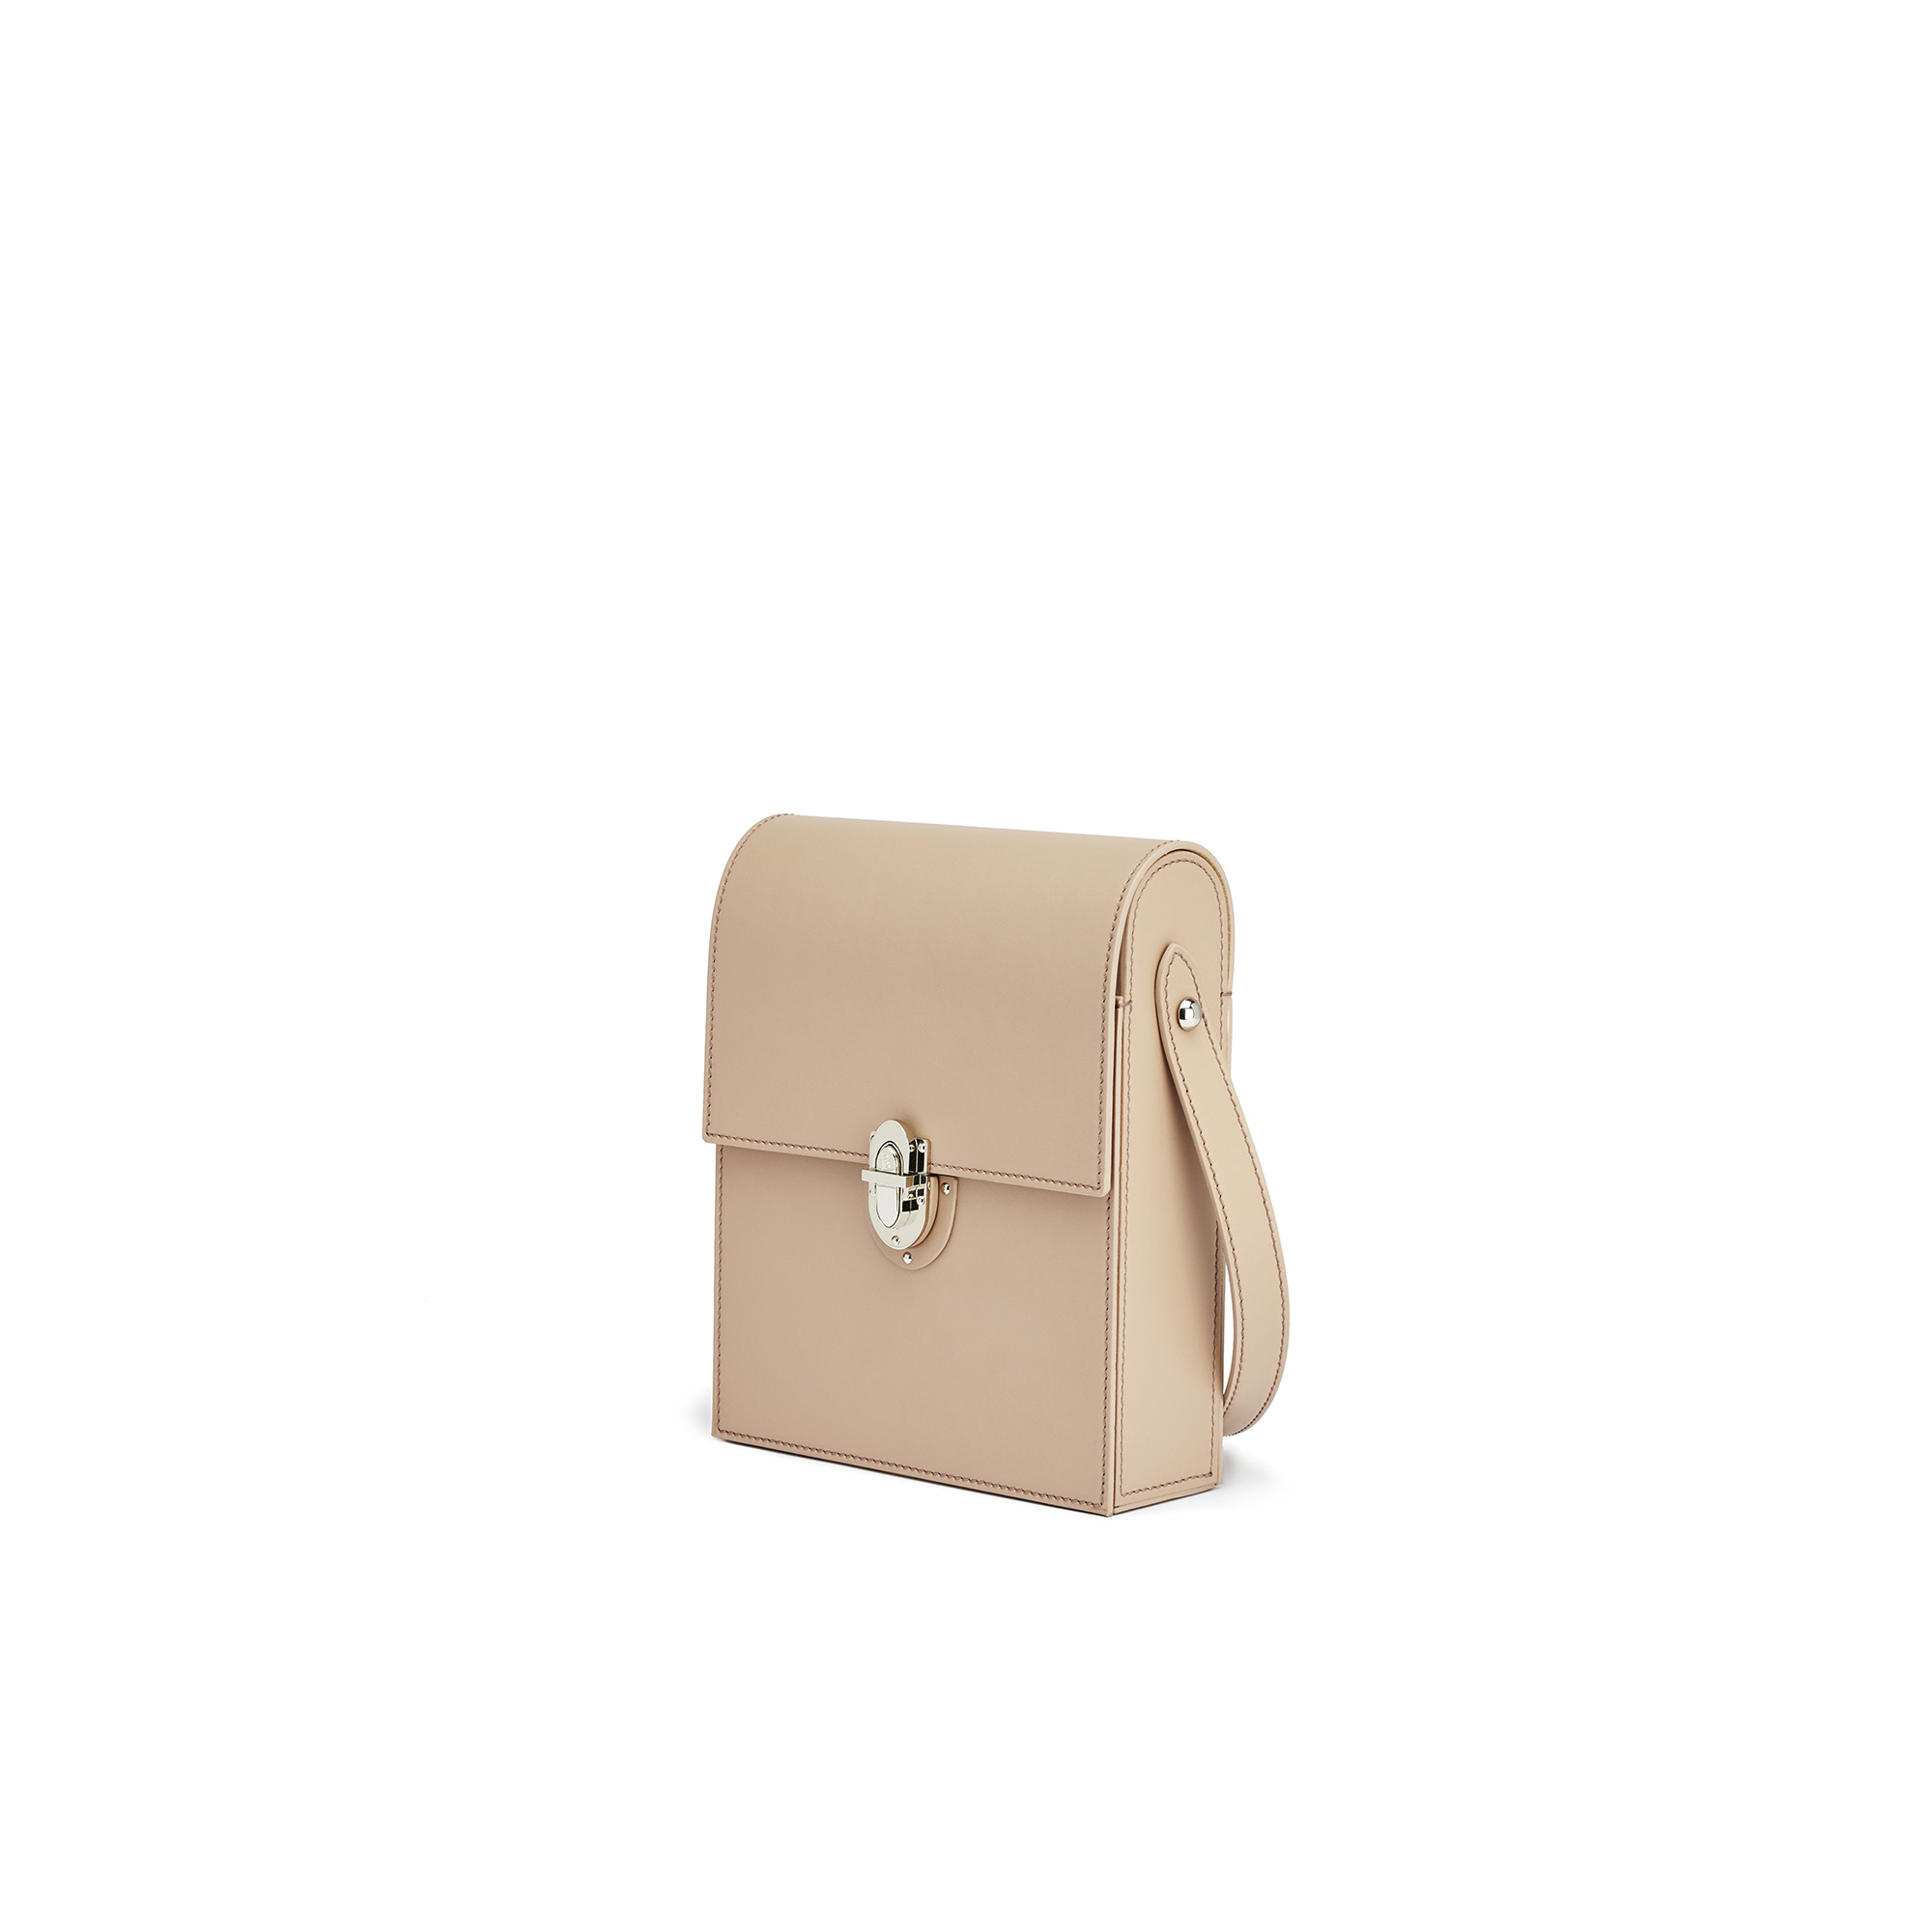 Gigi-nude-french-calf-bag-Bertoni-1949_01